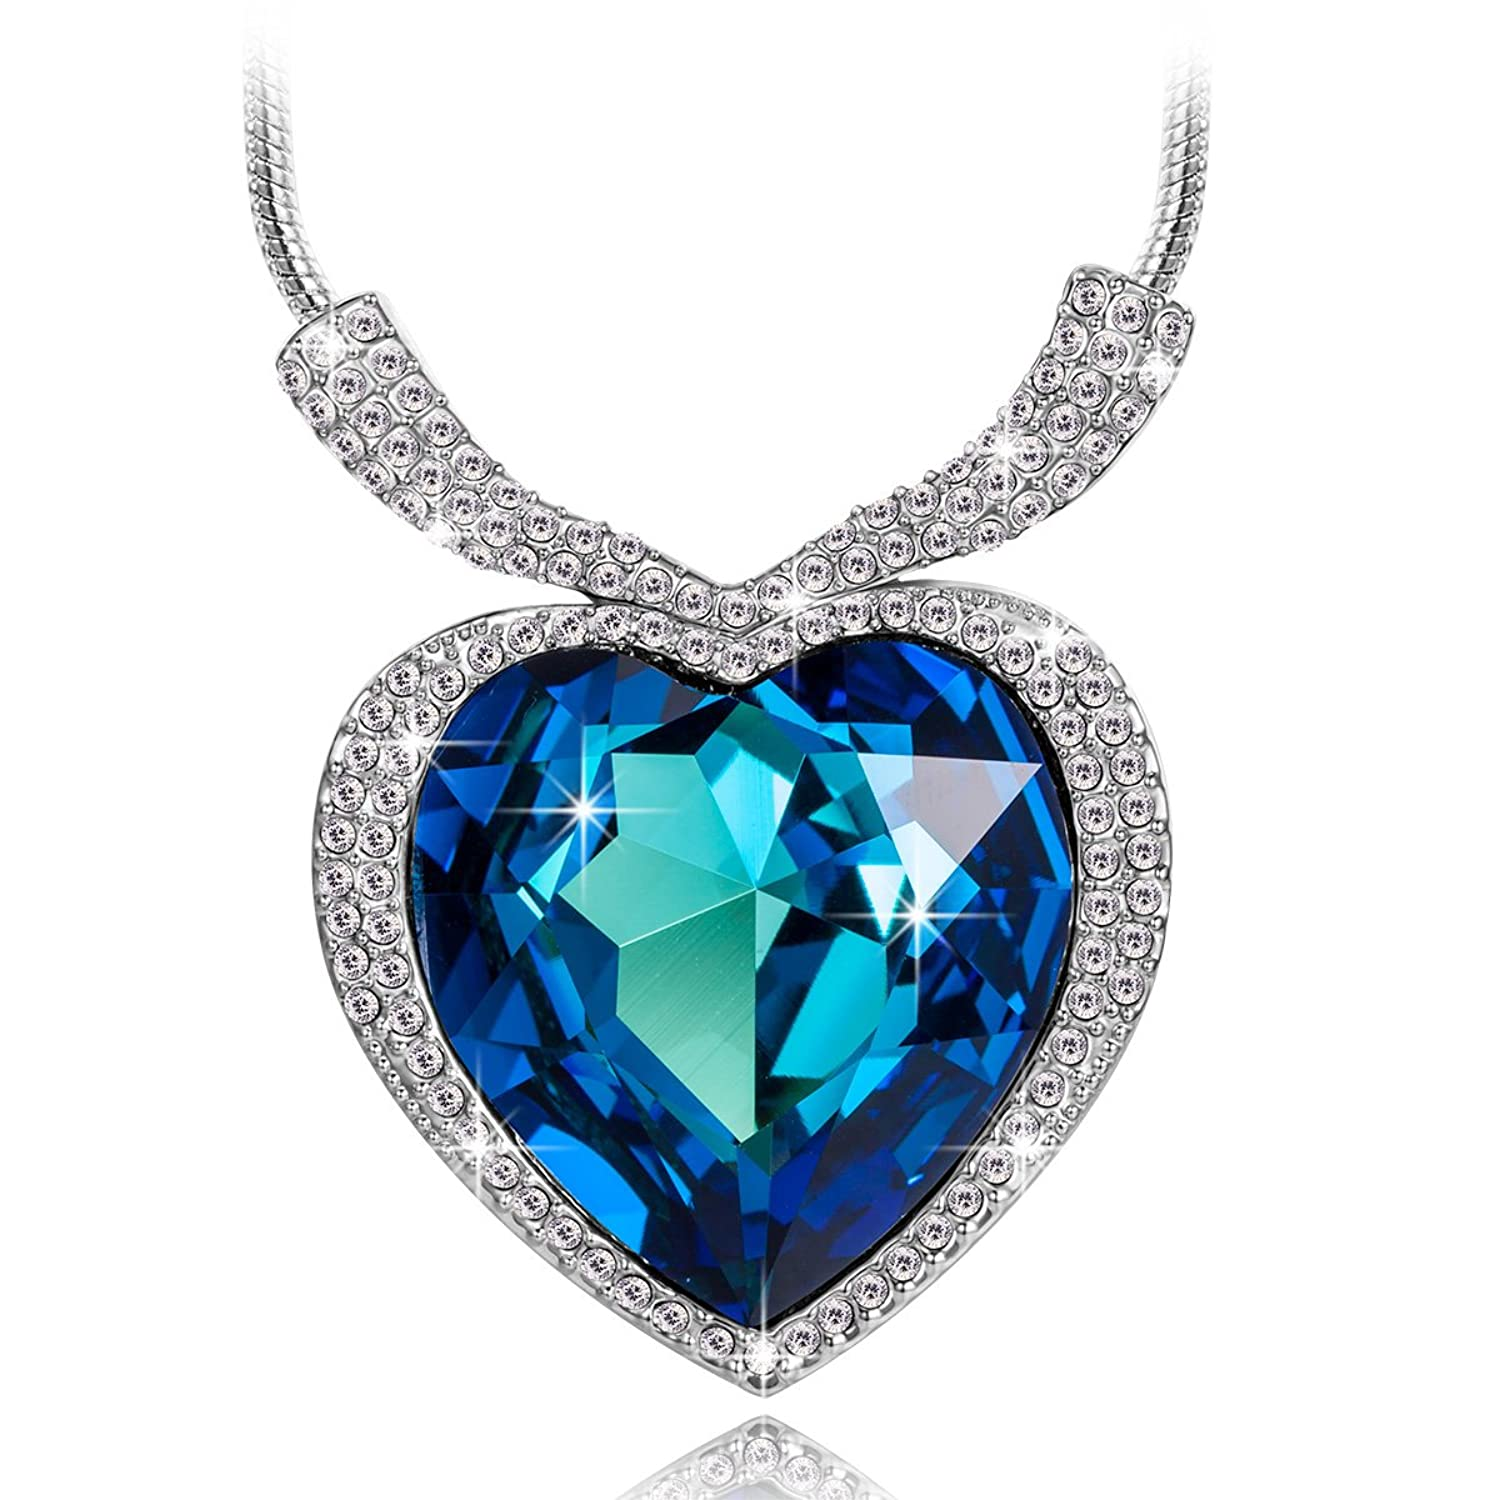 Amazon qianse heart of ocean white gold plated necklace love amazon qianse heart of ocean white gold plated necklace love heart necklaces for women fashion jewelry anniversary gifts for her perfect for festive aloadofball Gallery